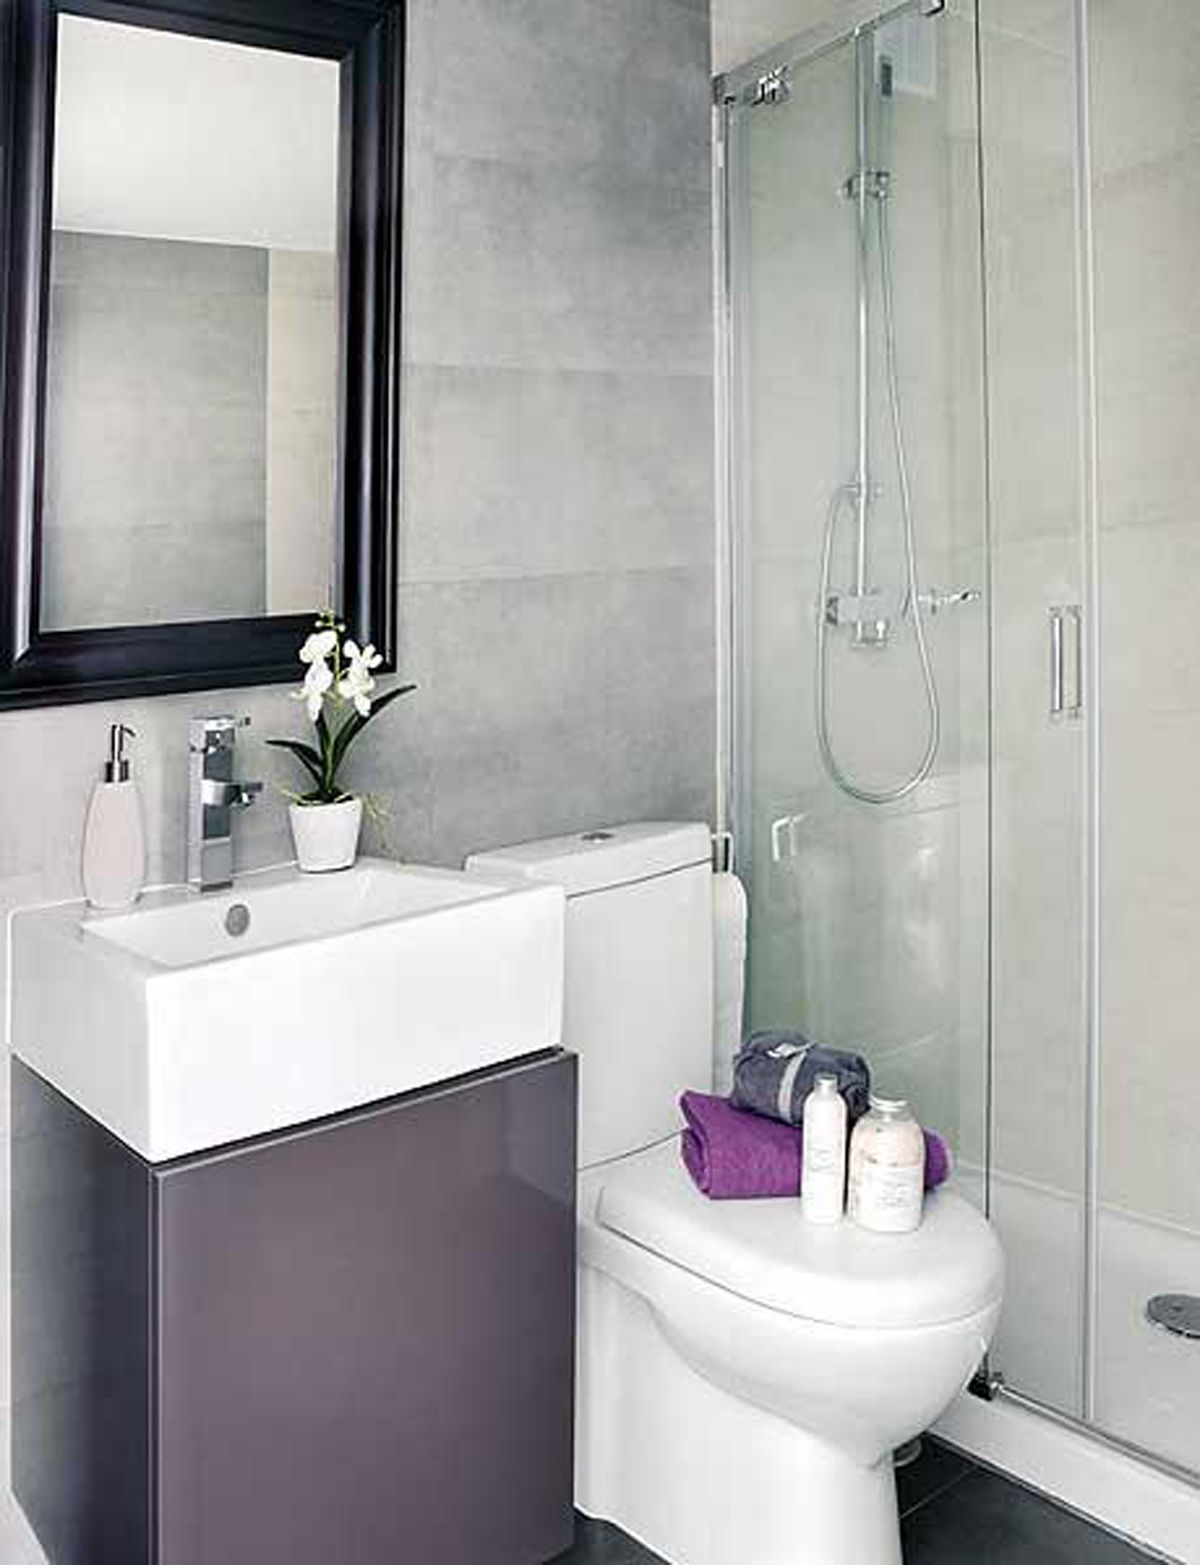 Intrinsic Interior Design Applied In Small Apartment Architecture - Designing small bathrooms